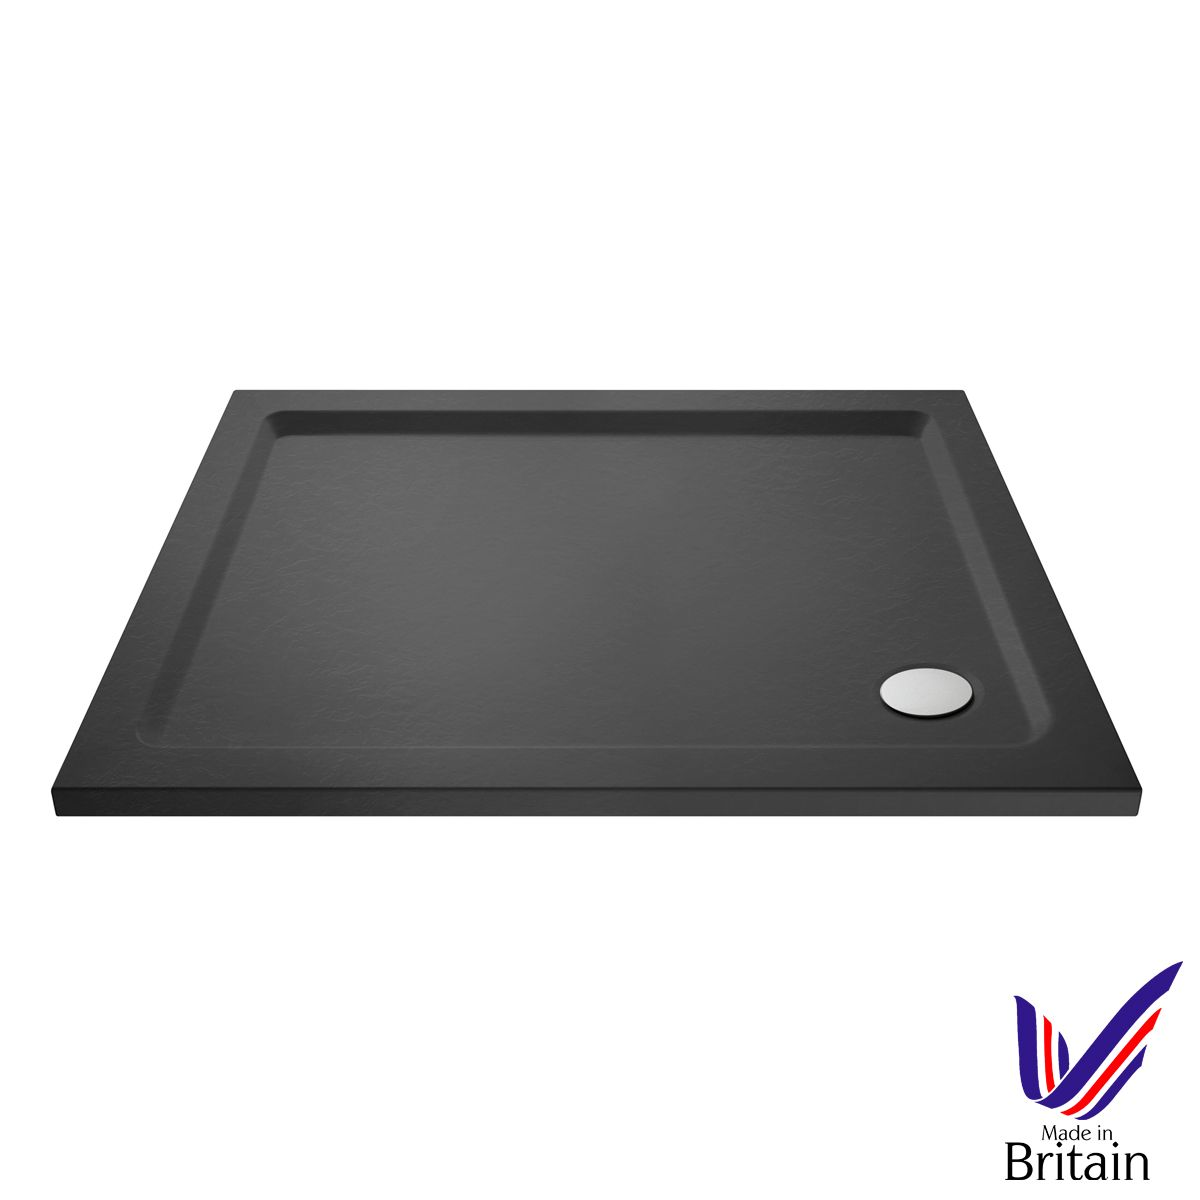 1100 x 700 Shower Tray Slate Grey Rectangular Low Profile by Pearlstone